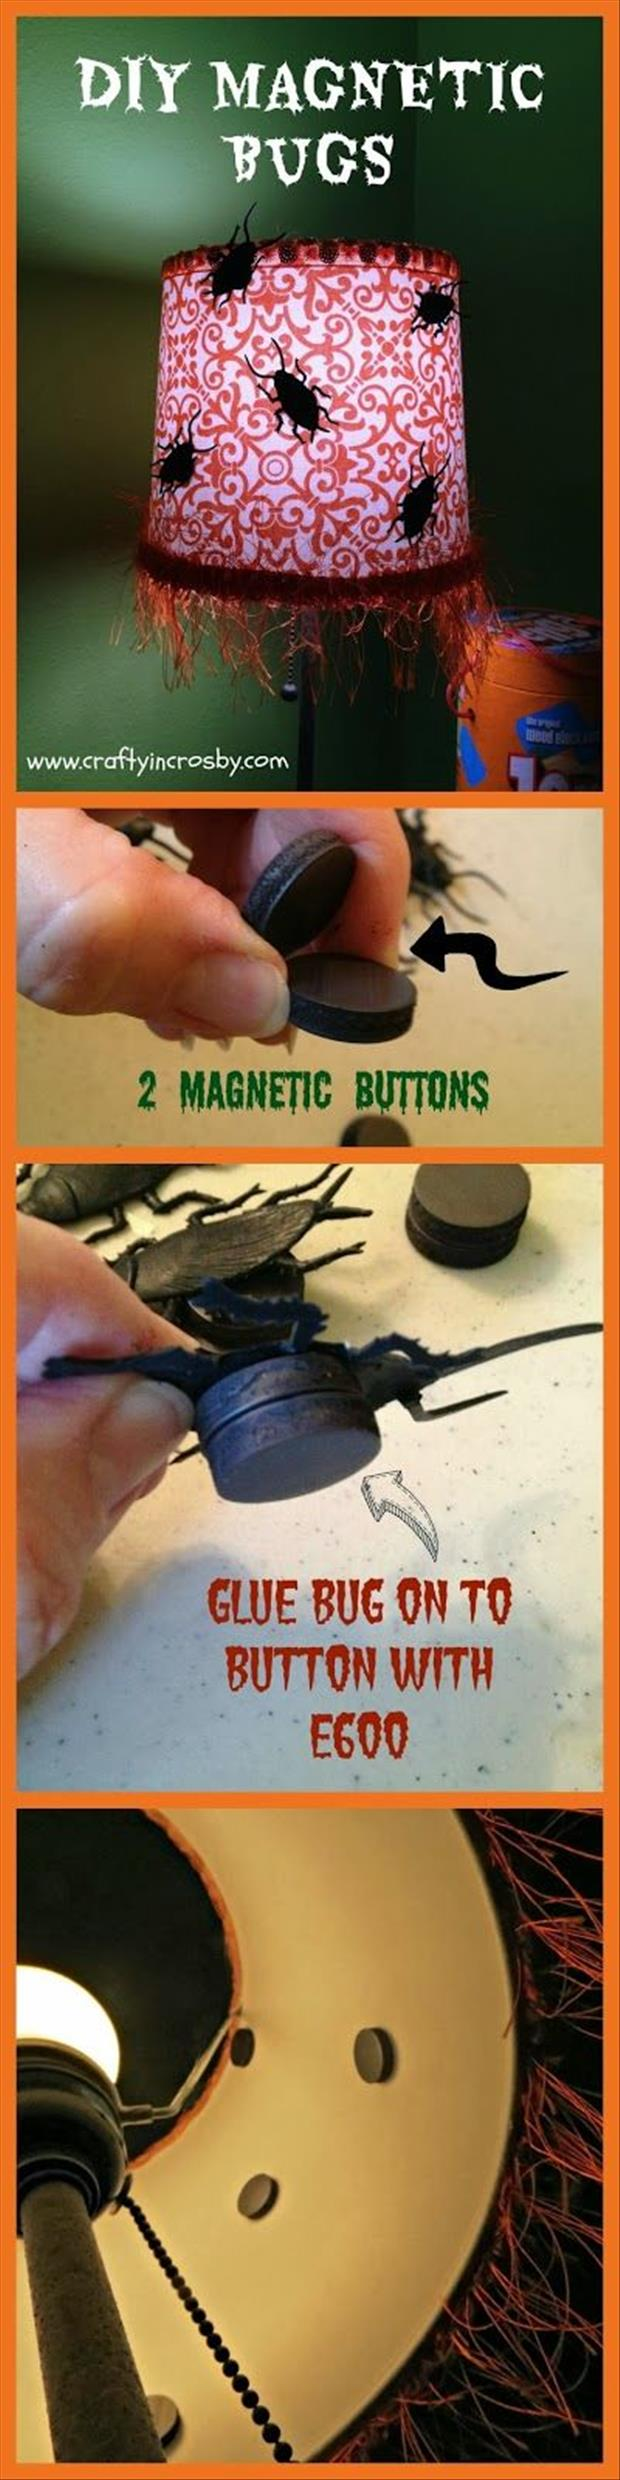 halloween craft ideas (8)